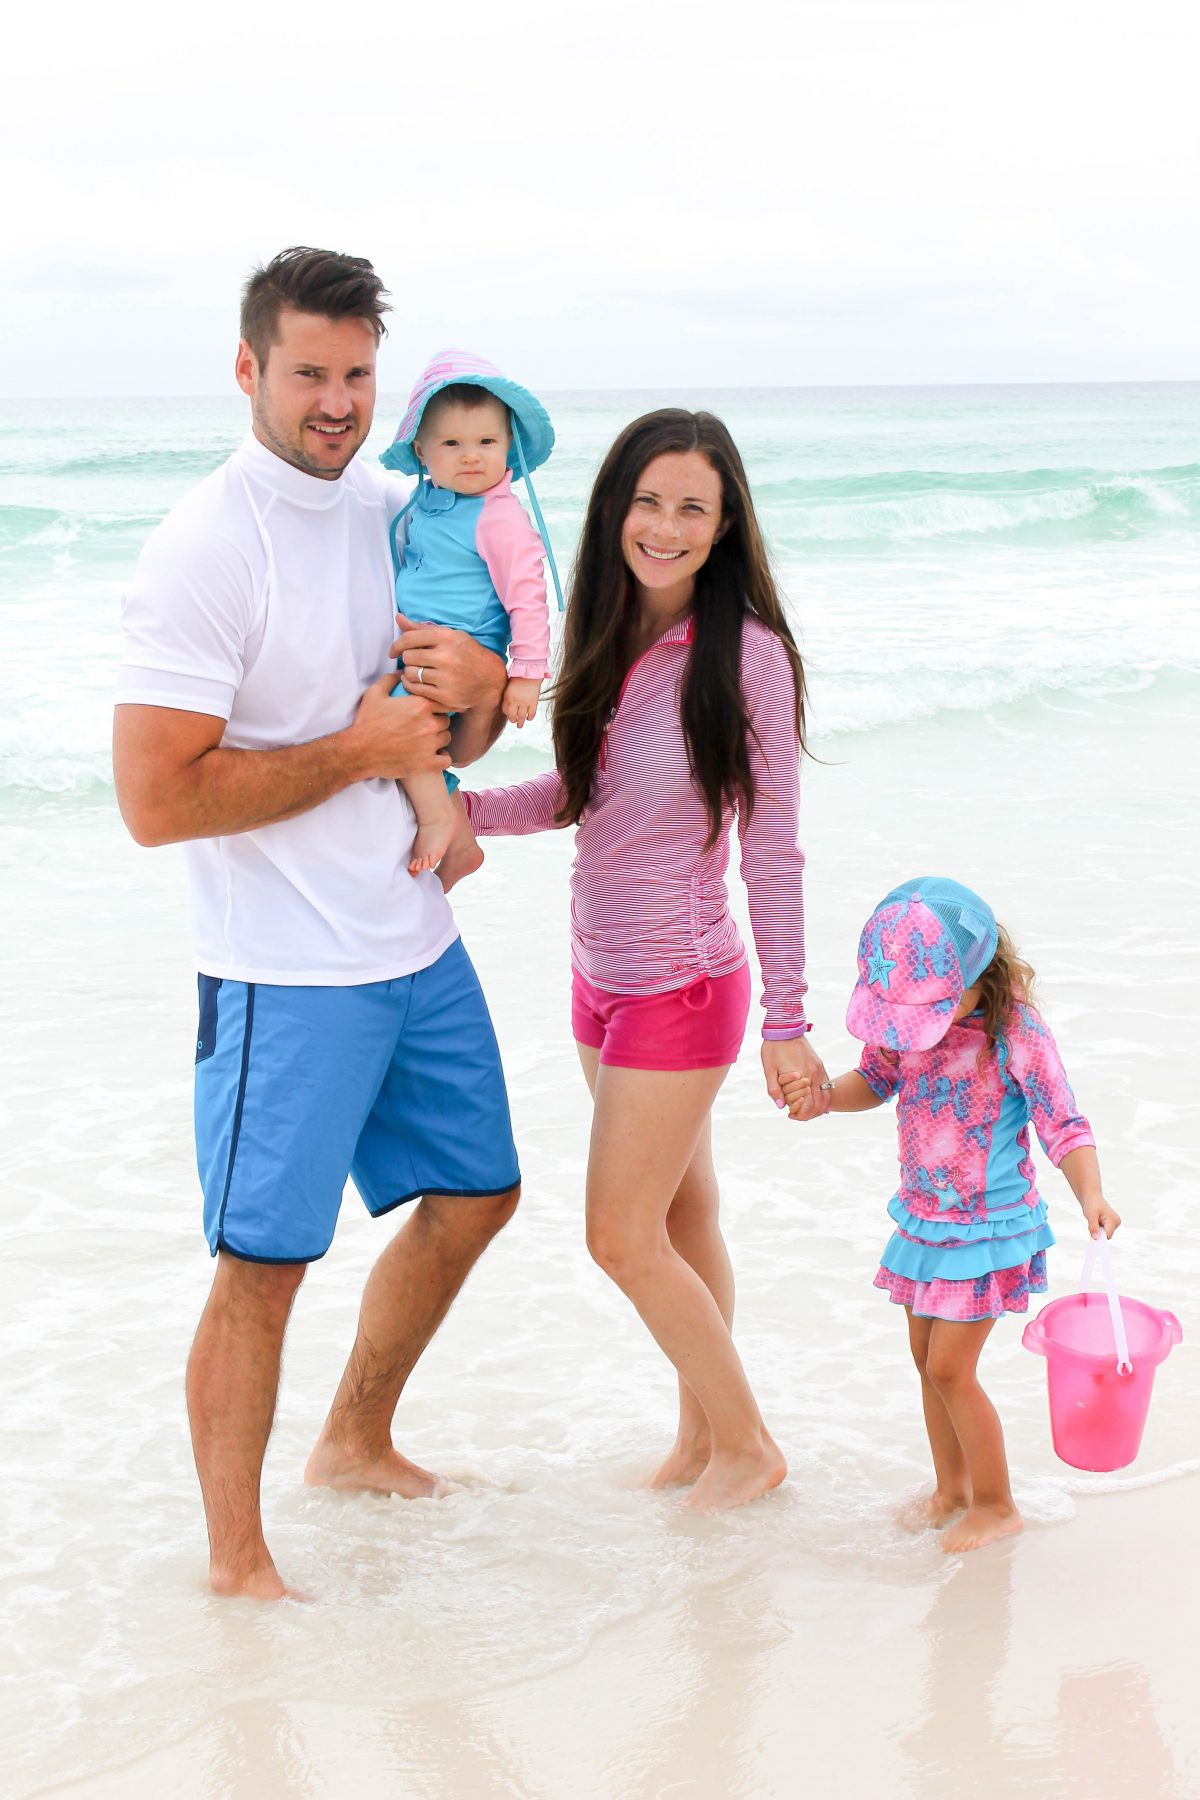 Family at the Beach and Growth on Instagram